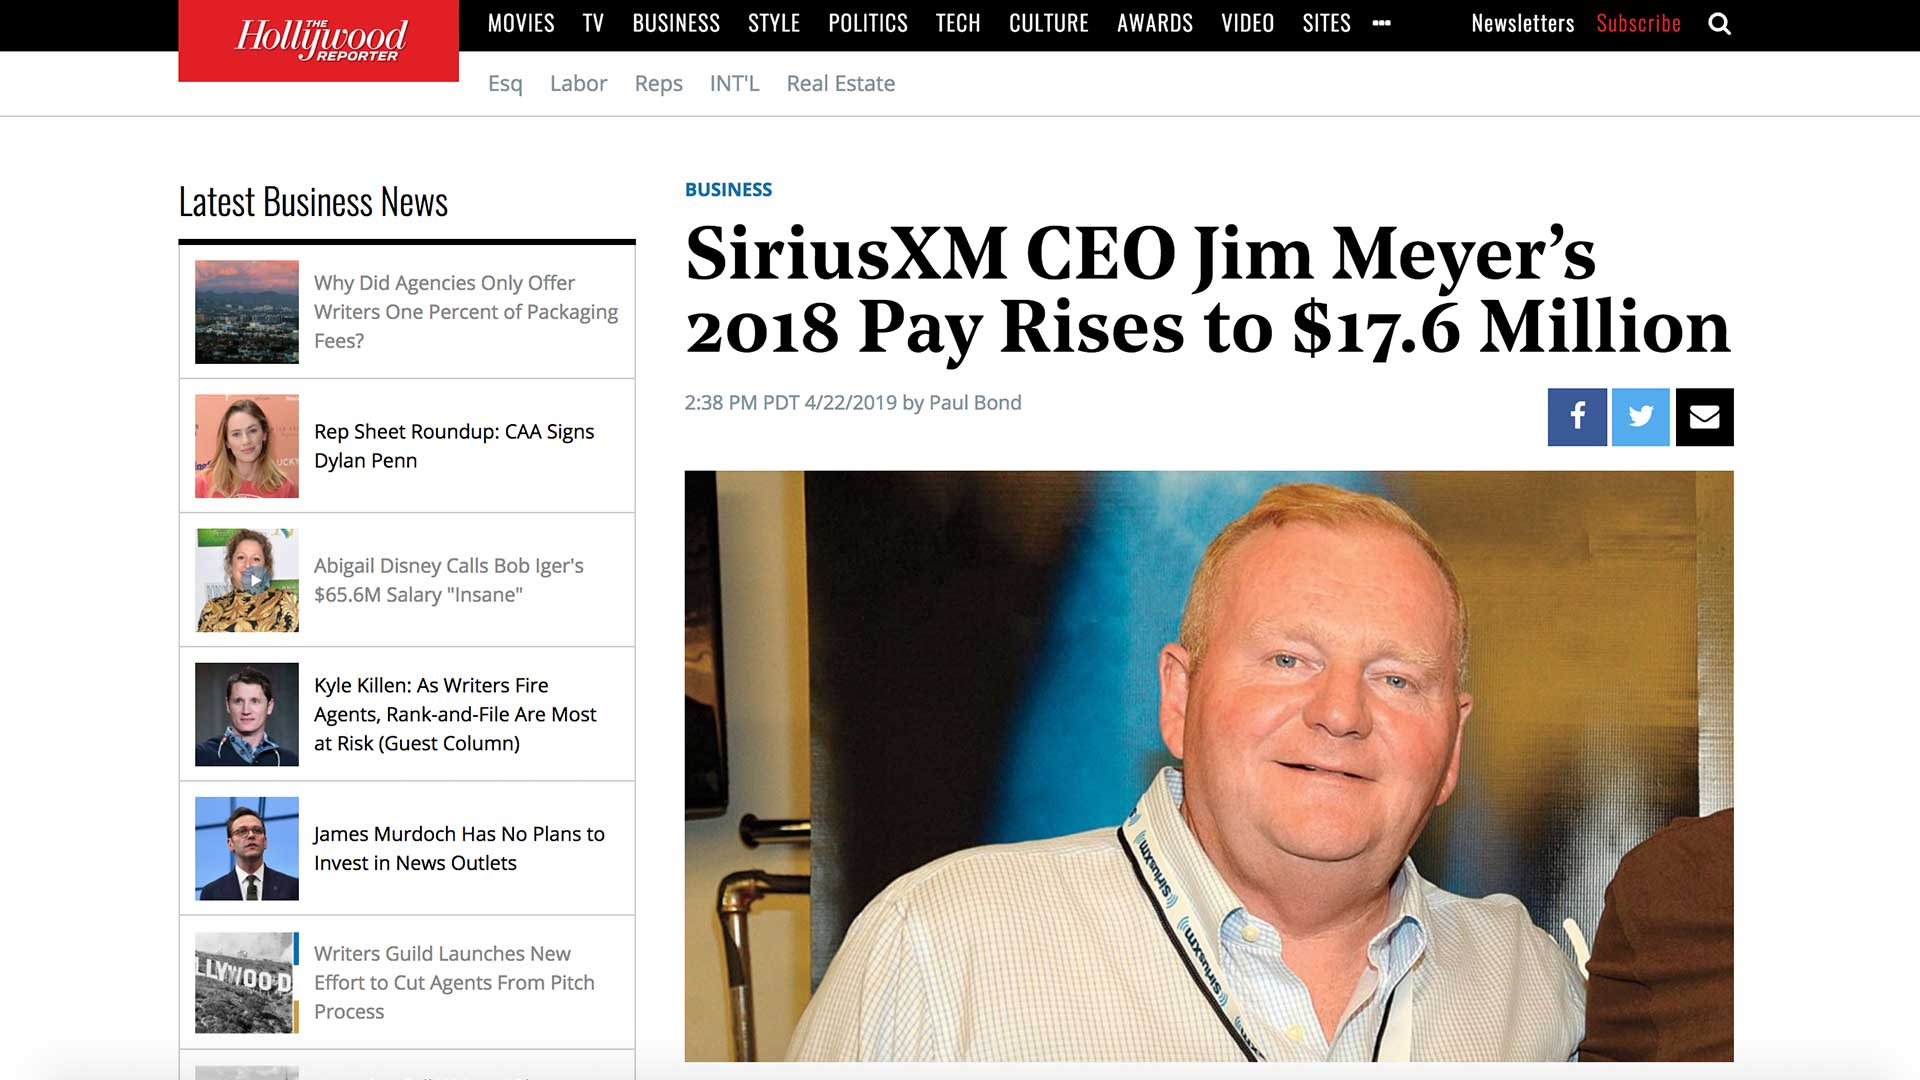 Fairness Rocks News SiriusXM CEO Jim Meyer's 2018 Pay Rises to $17.6 Million